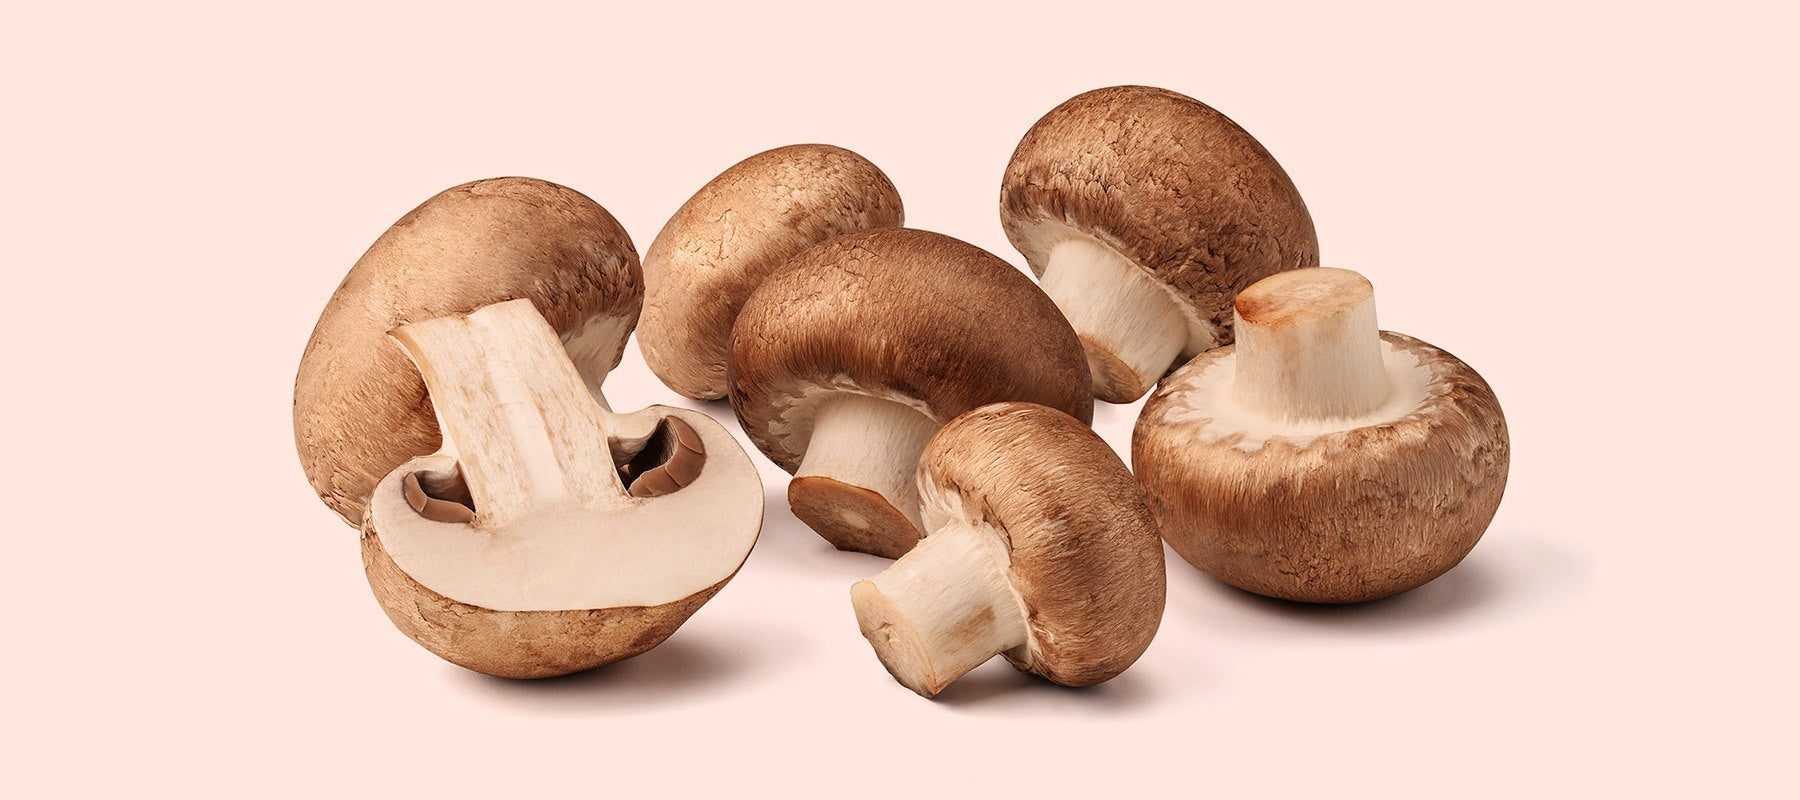 image of mushrooms on a light pink background.